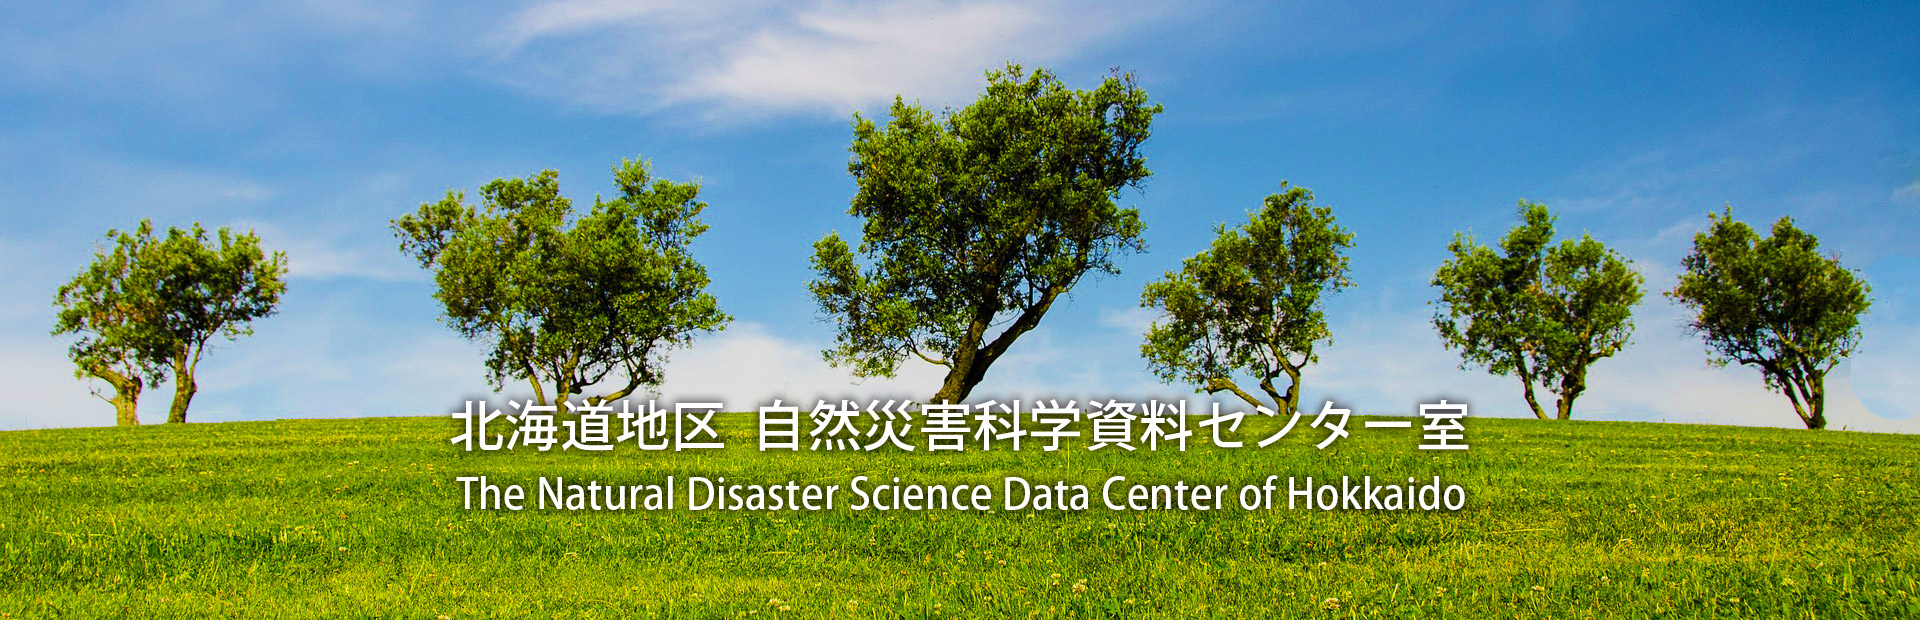 北海道地区自然災害科学資料センター室 The Natural Disaster Science Data Center of Hokkaido